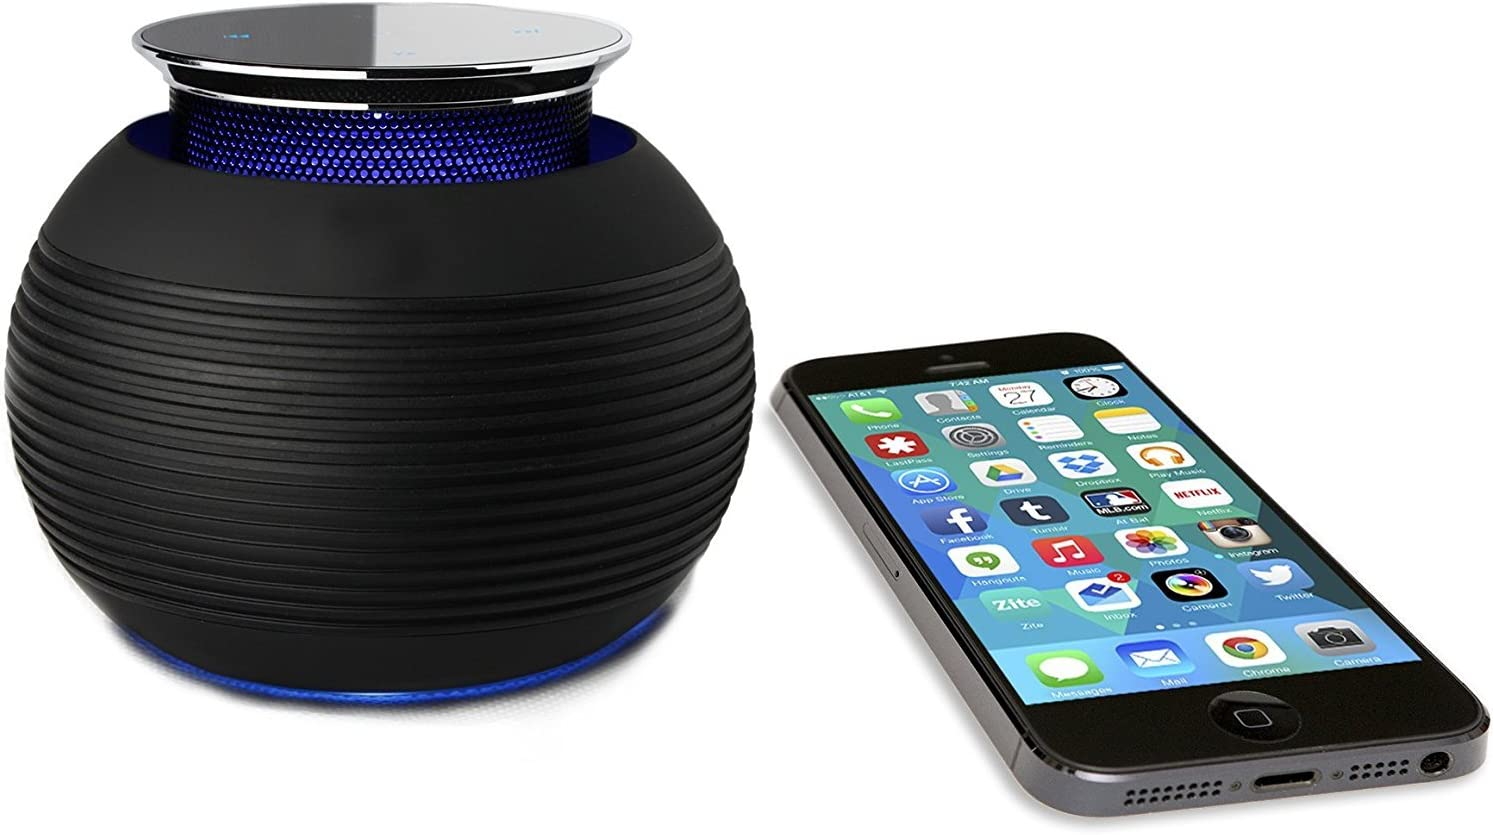 Wireless Bluetooth Speaker- BLKBOX POP MAX Hands Free Bluetooth Speaker - for iPhones, iPads, Androids, Samsung and All Phones, Tablets, Computers (Bumpin' Black)